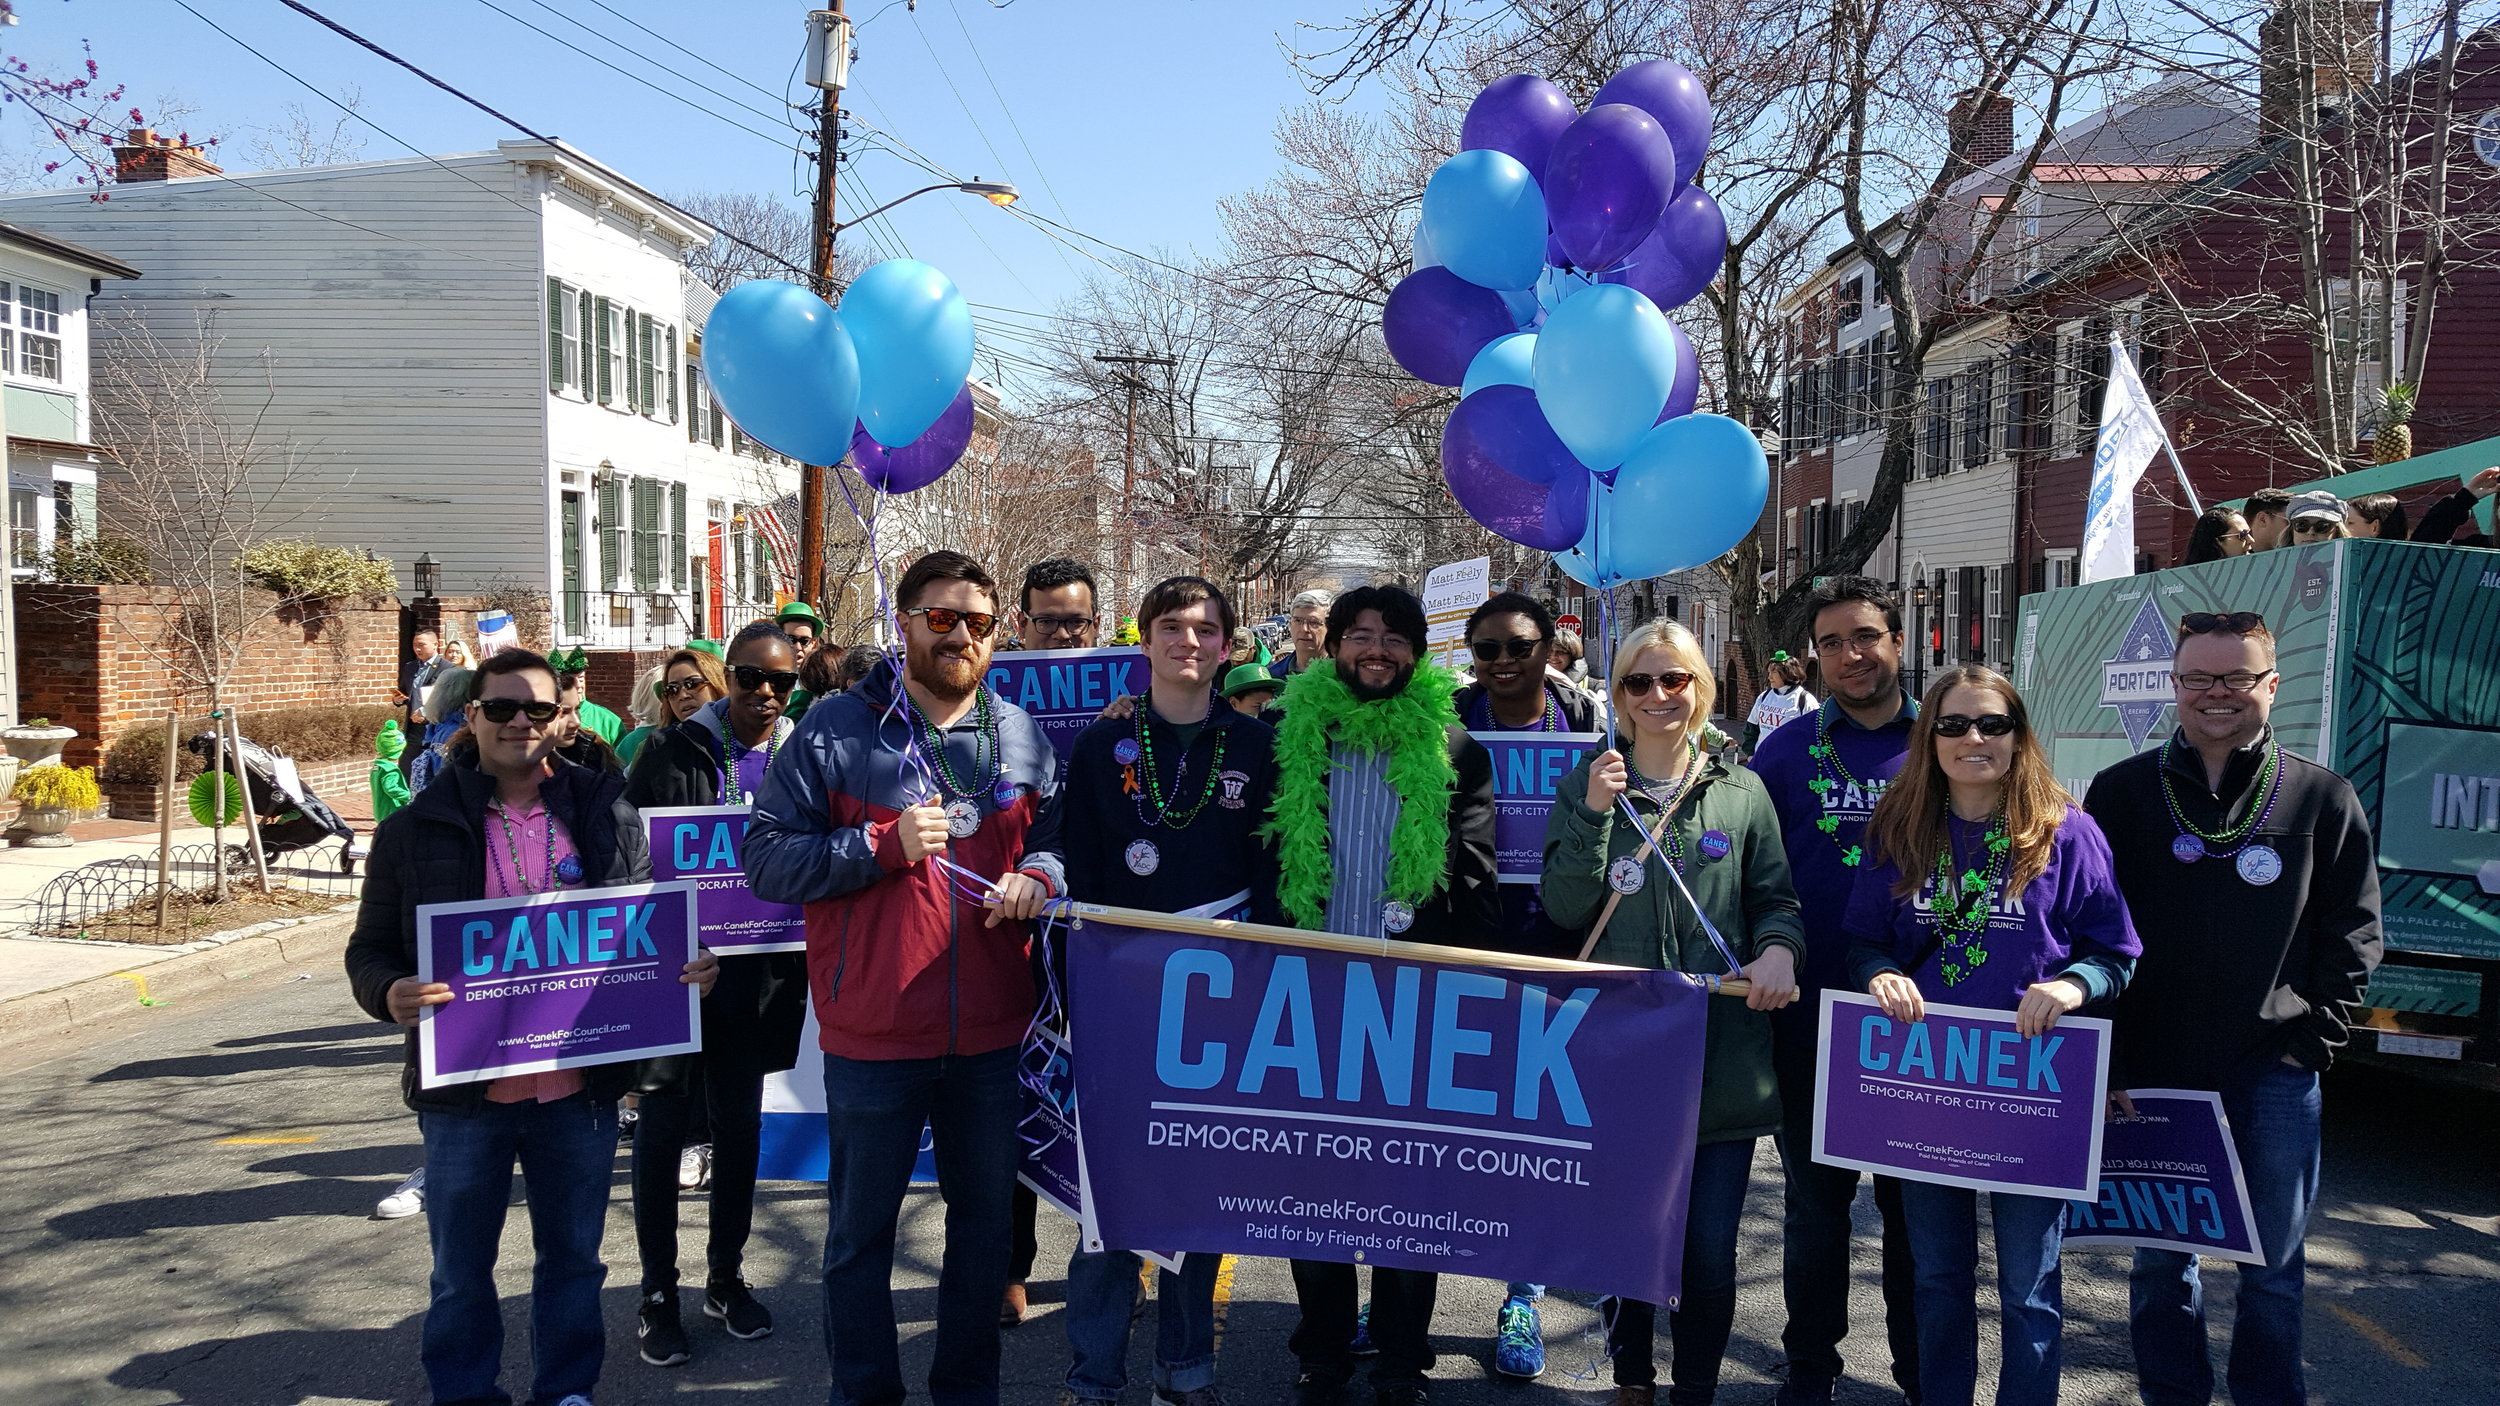 #TeamCanek at the St. Patrick's Day Parade.